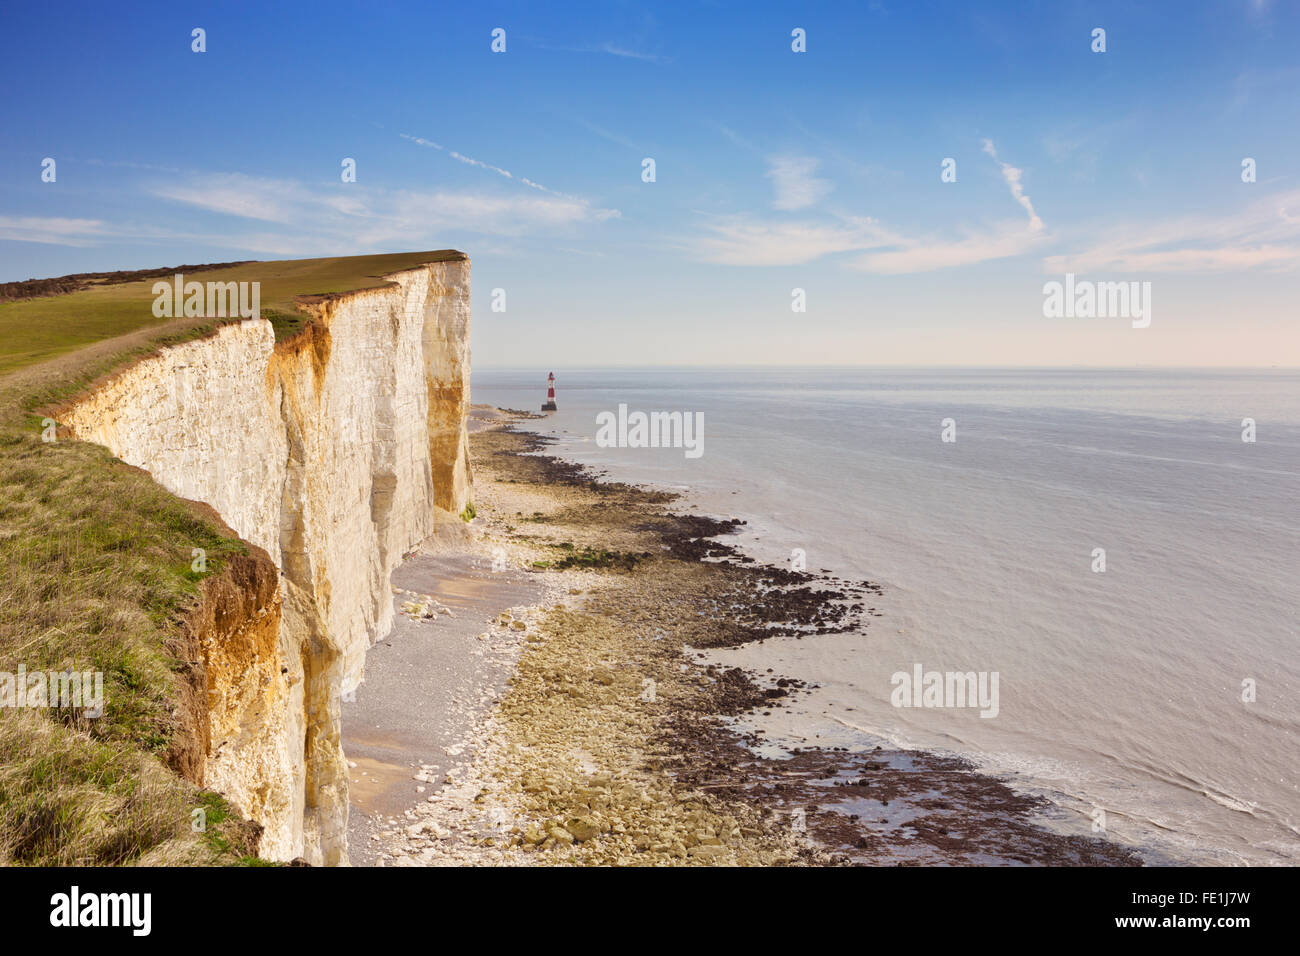 The cliffs and lighthouse at Beachy Head on the south coast of England. - Stock Image